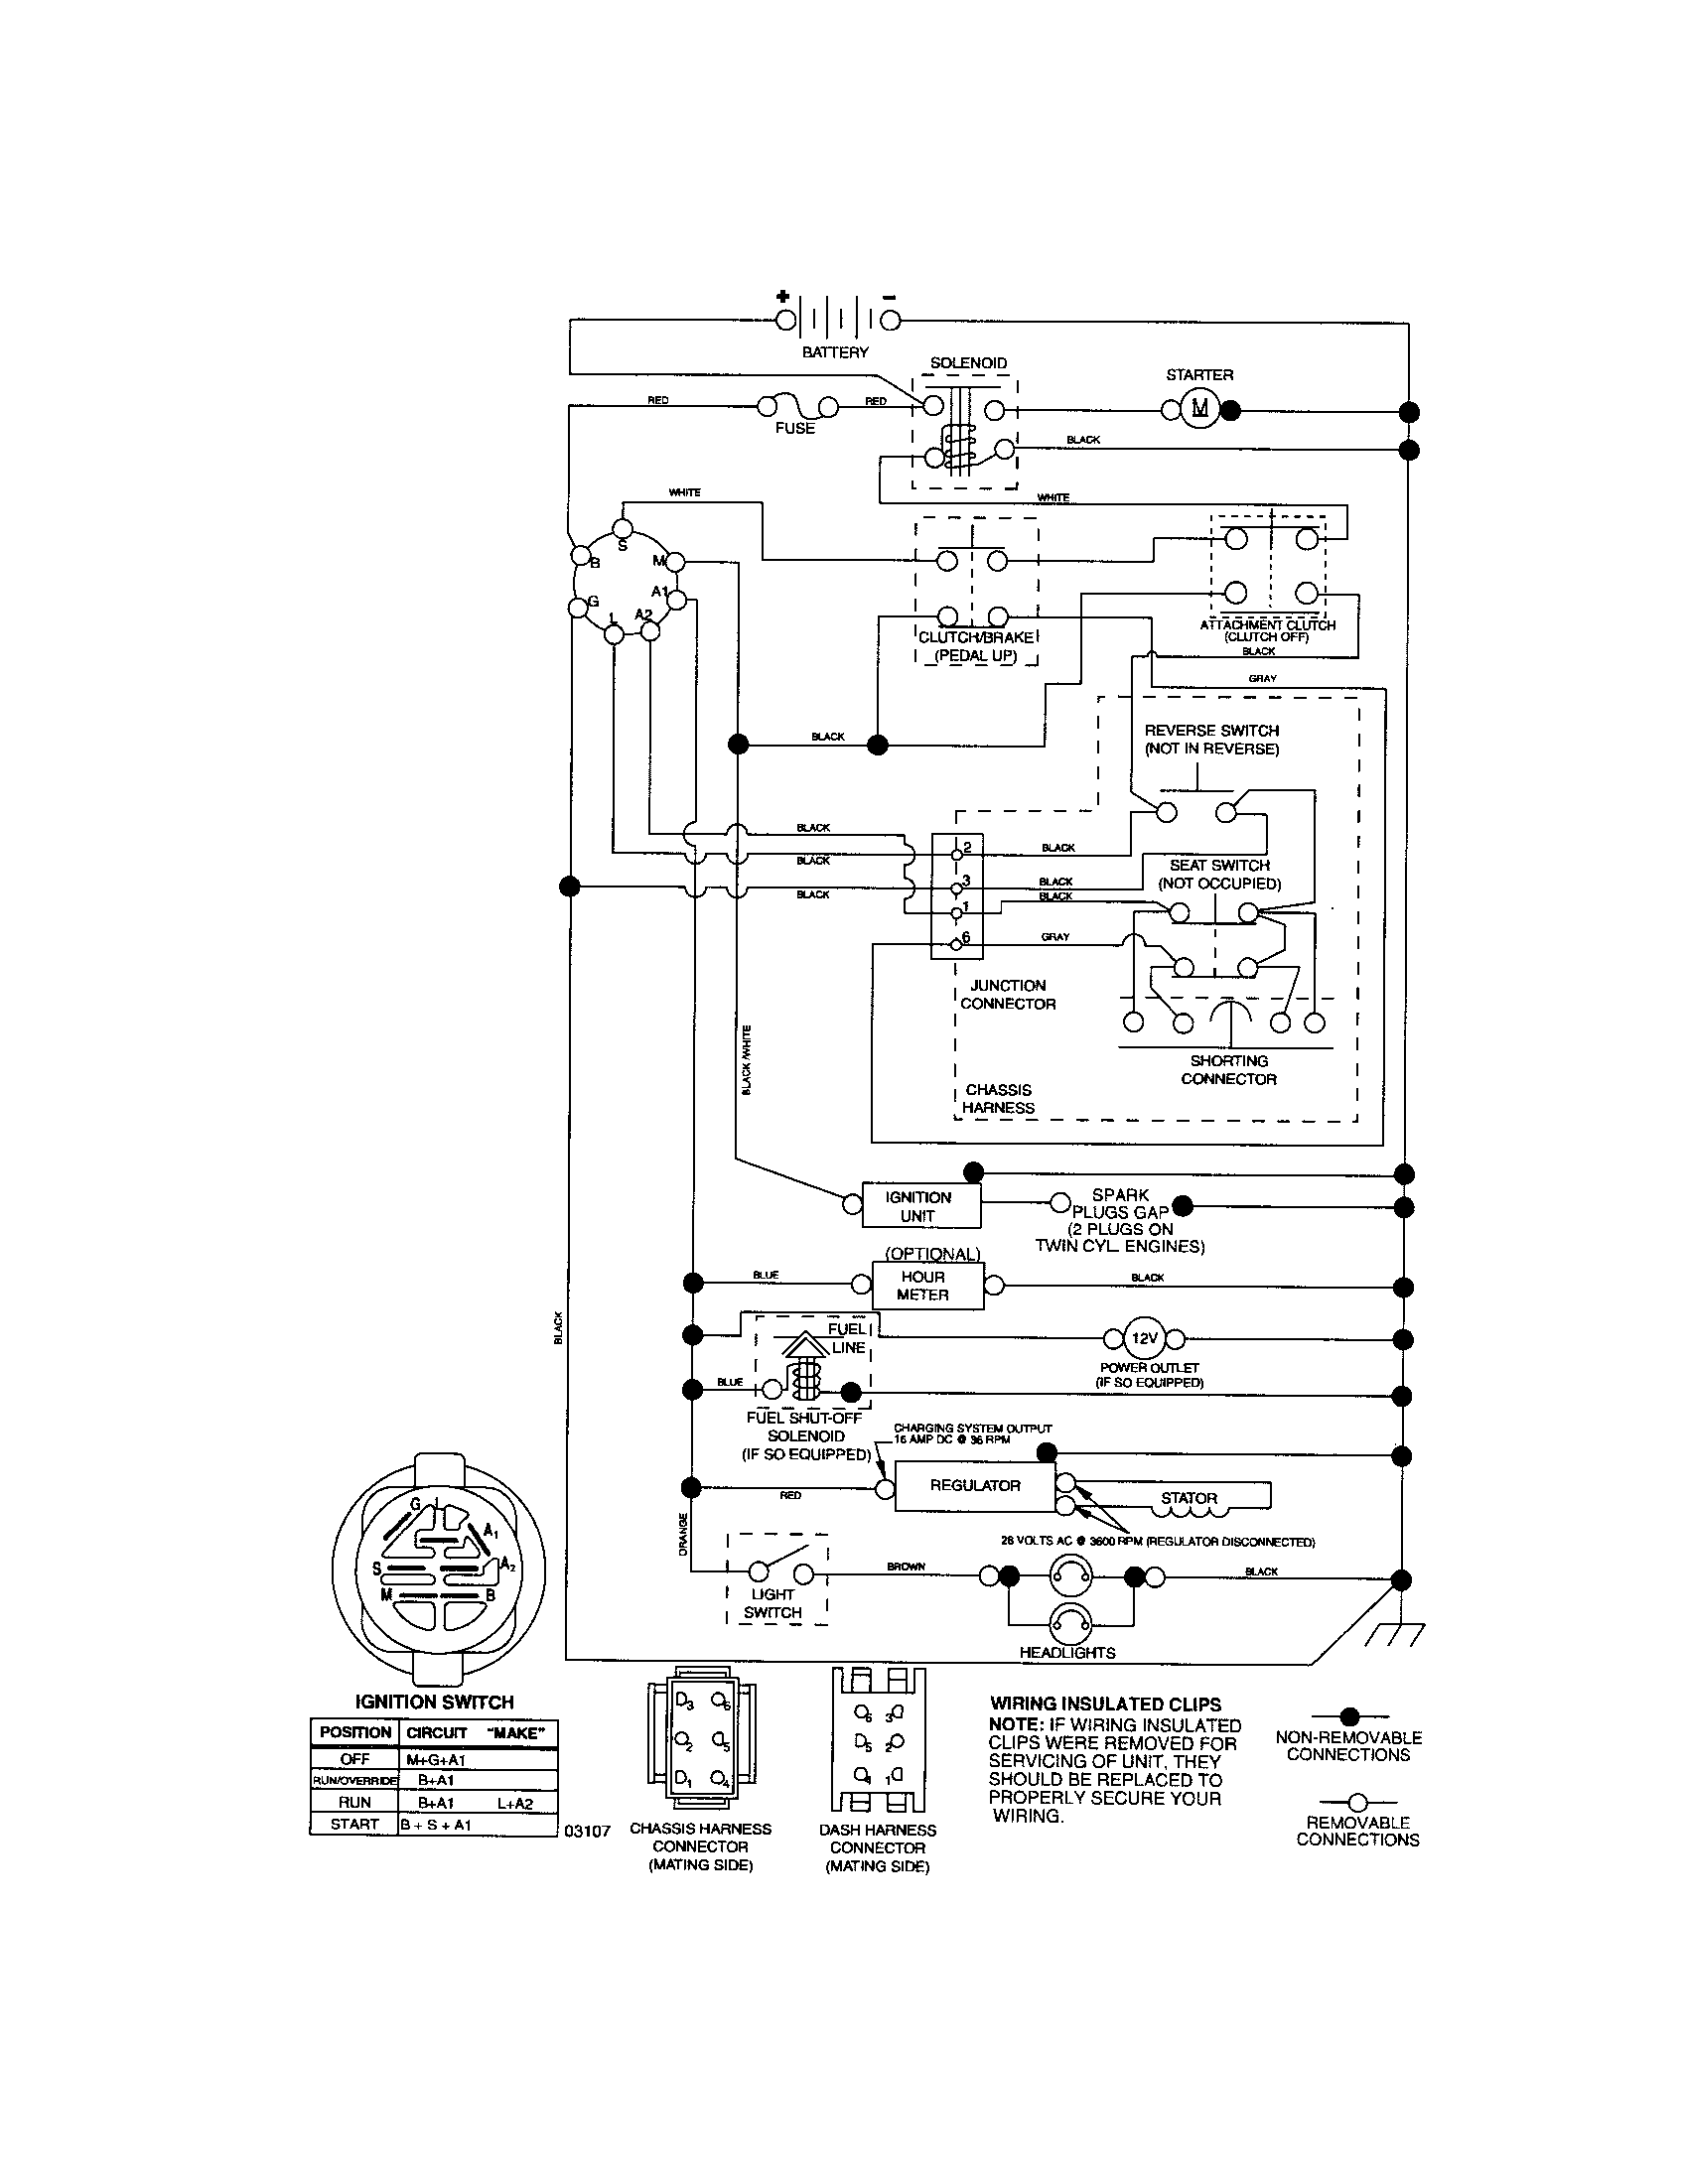 6af5f1447fd13c8443376822ddc1e105 lawn mower ignition switch wiring diagram husqvarna riding lawn